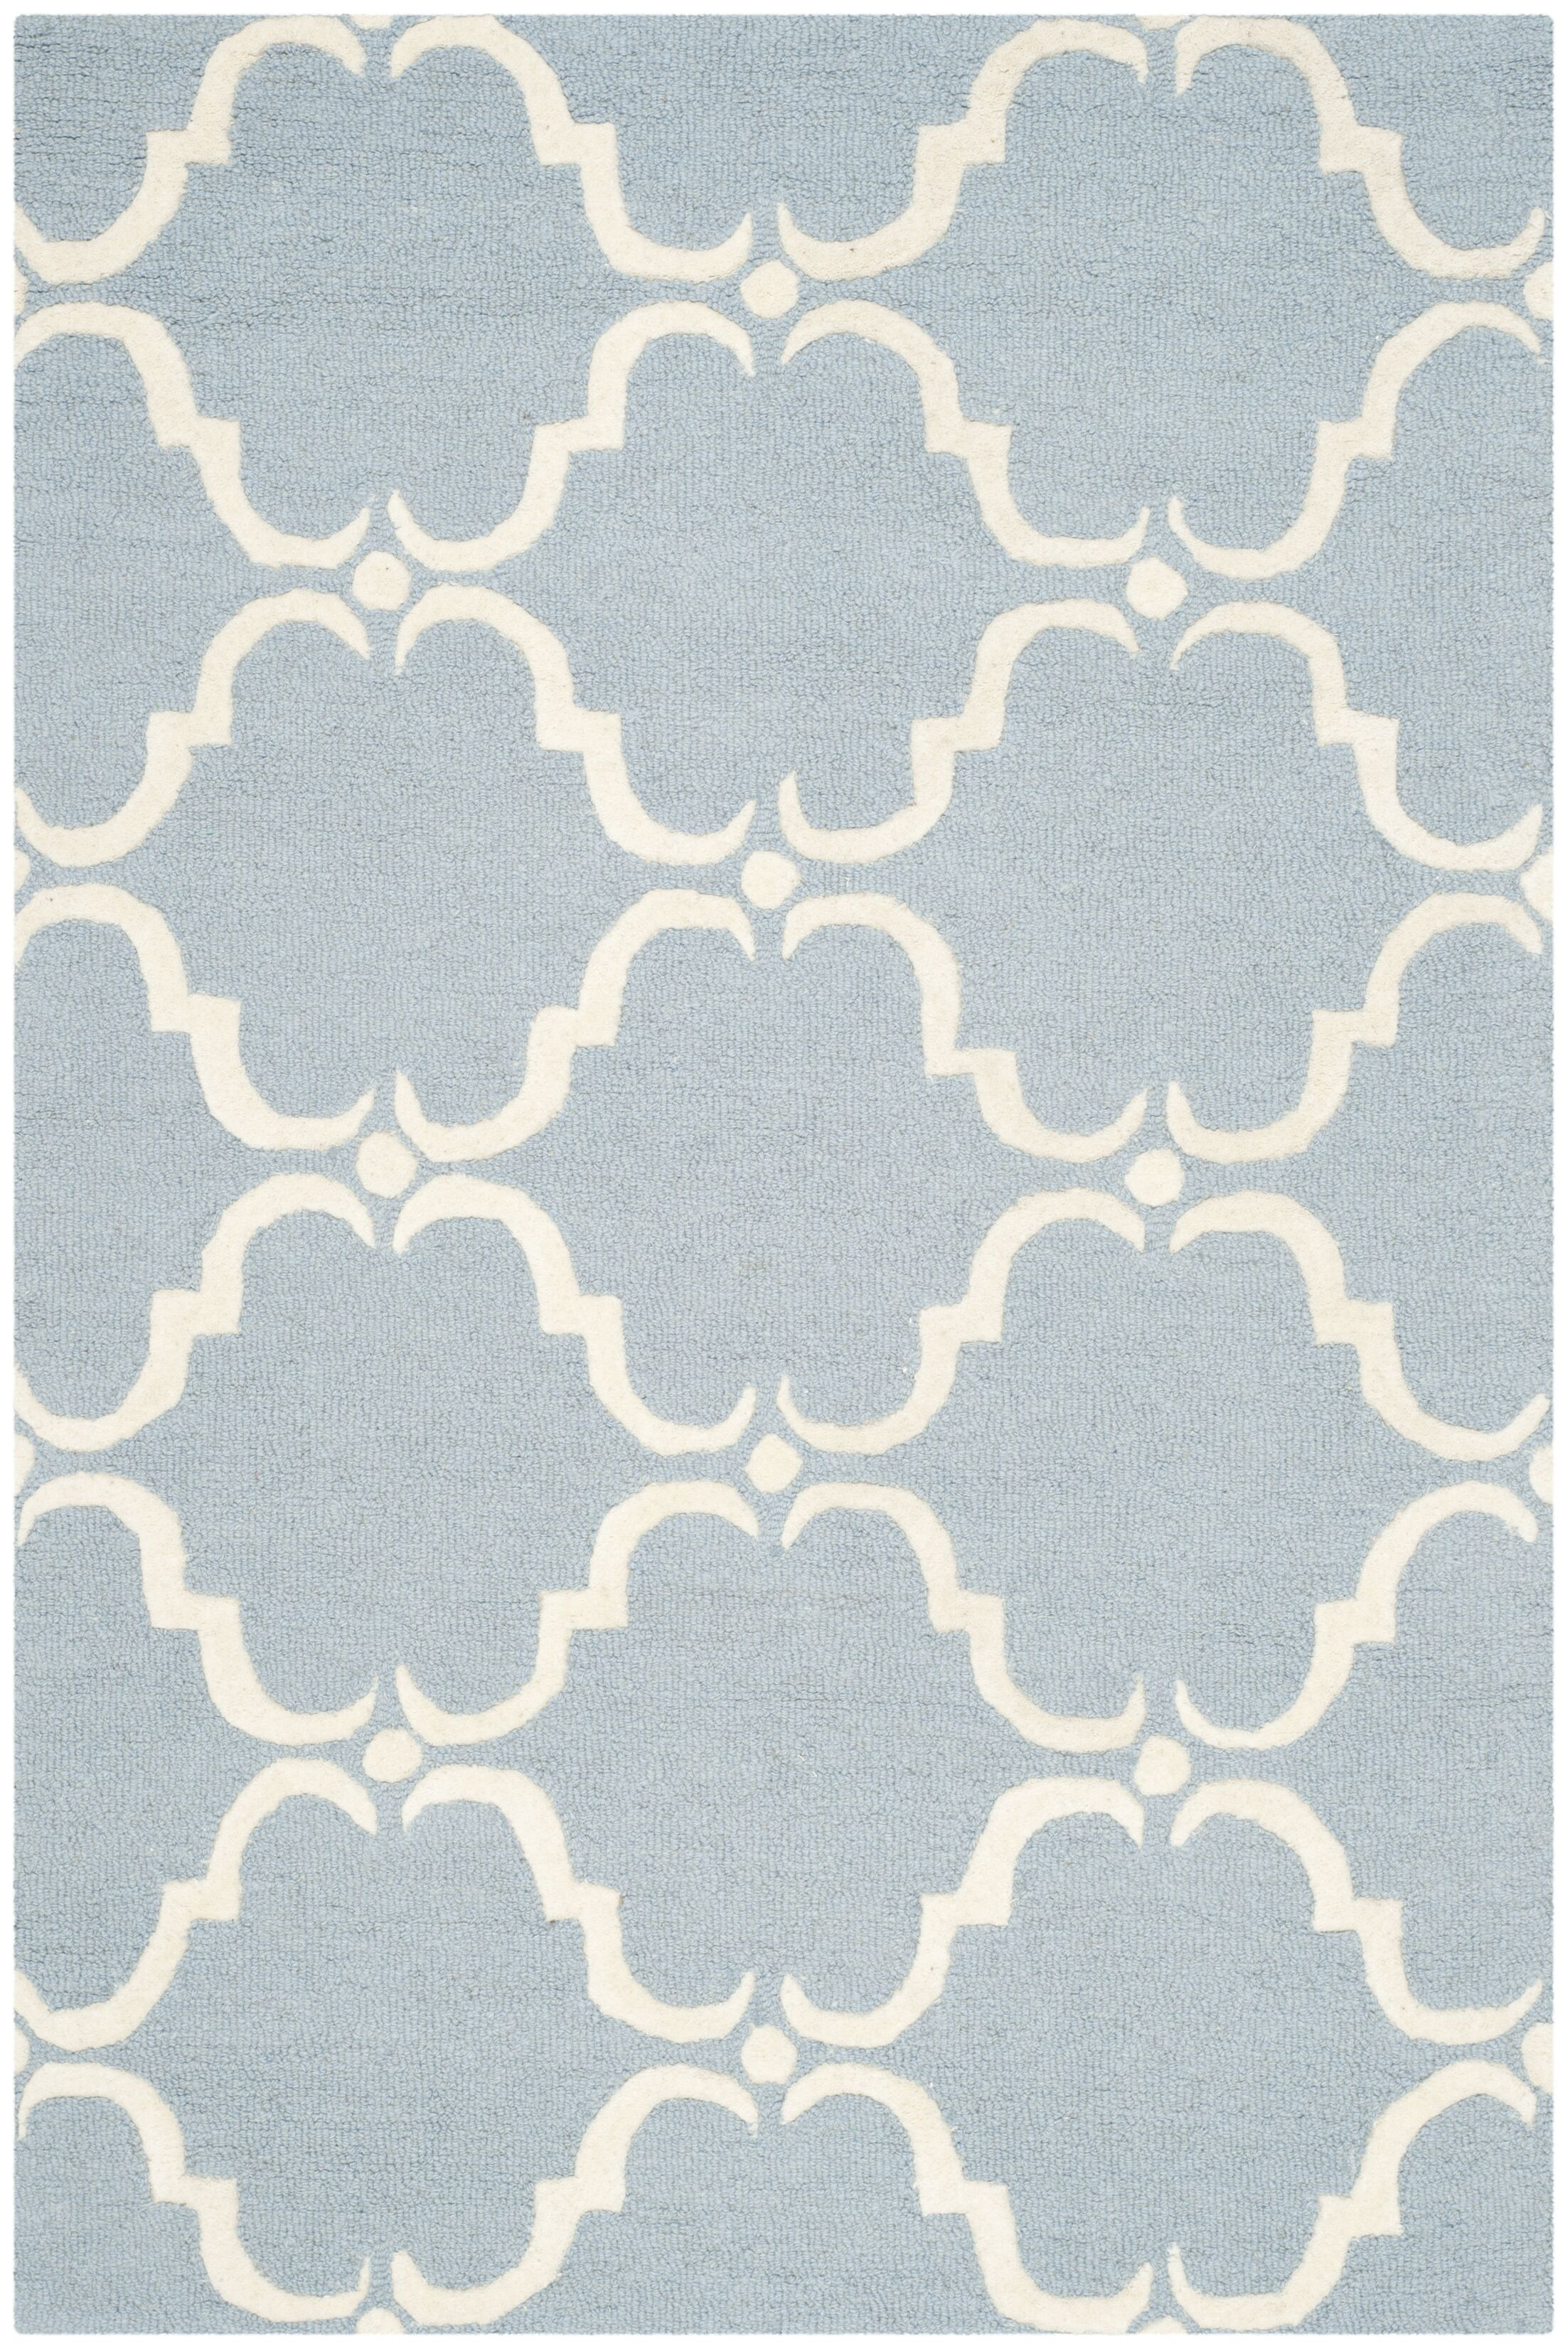 Cambridge Tufted Wool Blue/Ivory Area Rug Rug Size: Rectangle 4' x 6'